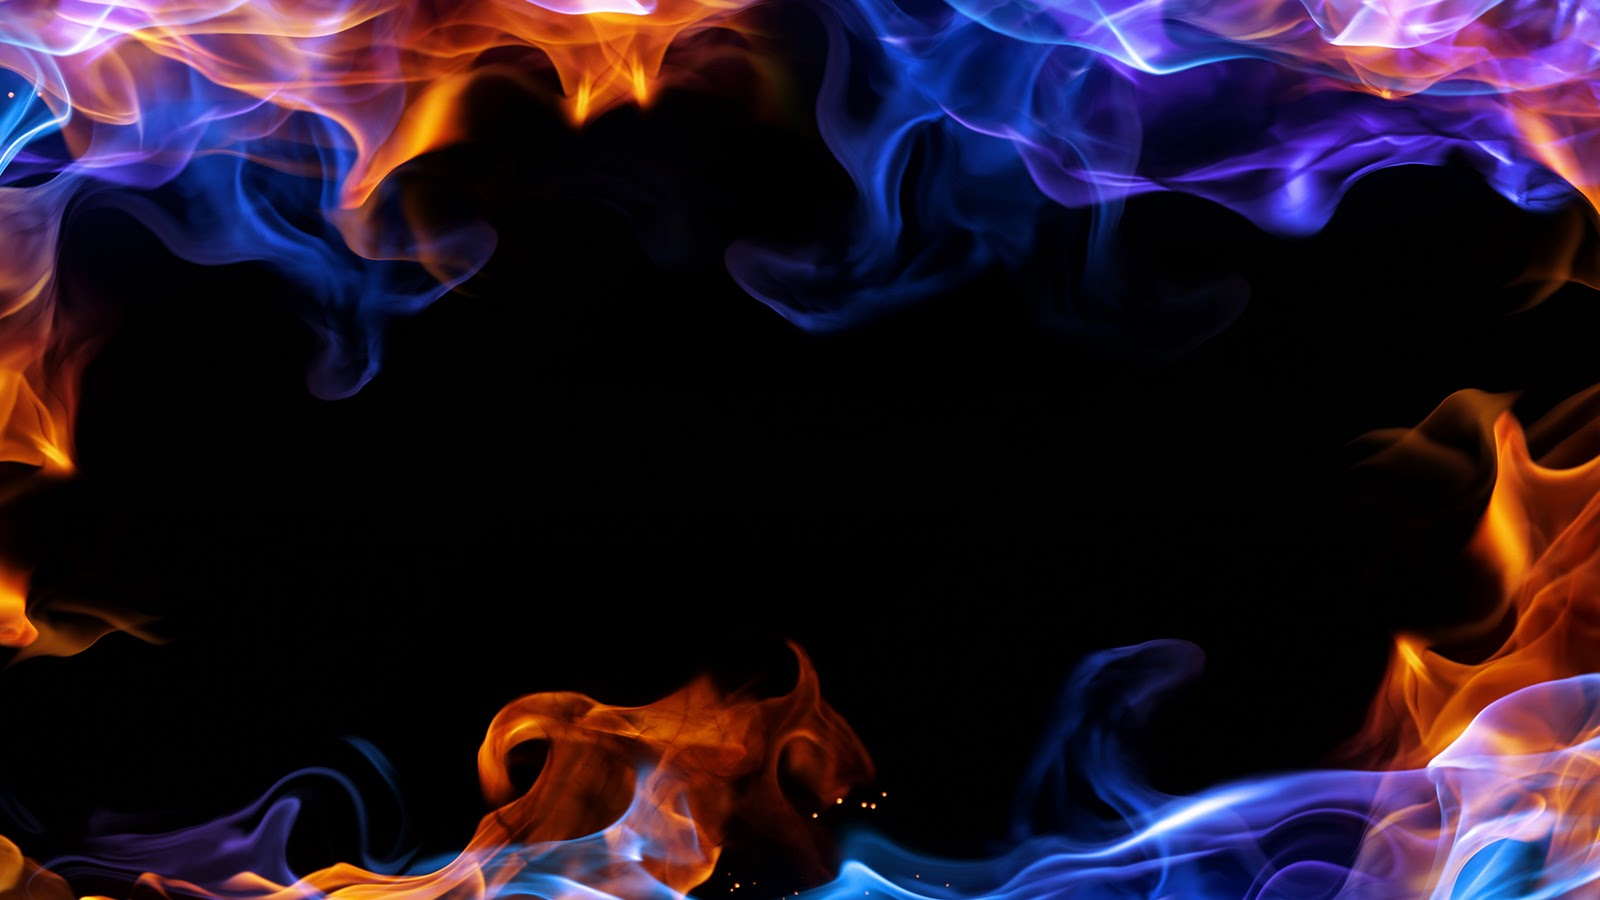 5 57007 fire wallpaper red and blue flames